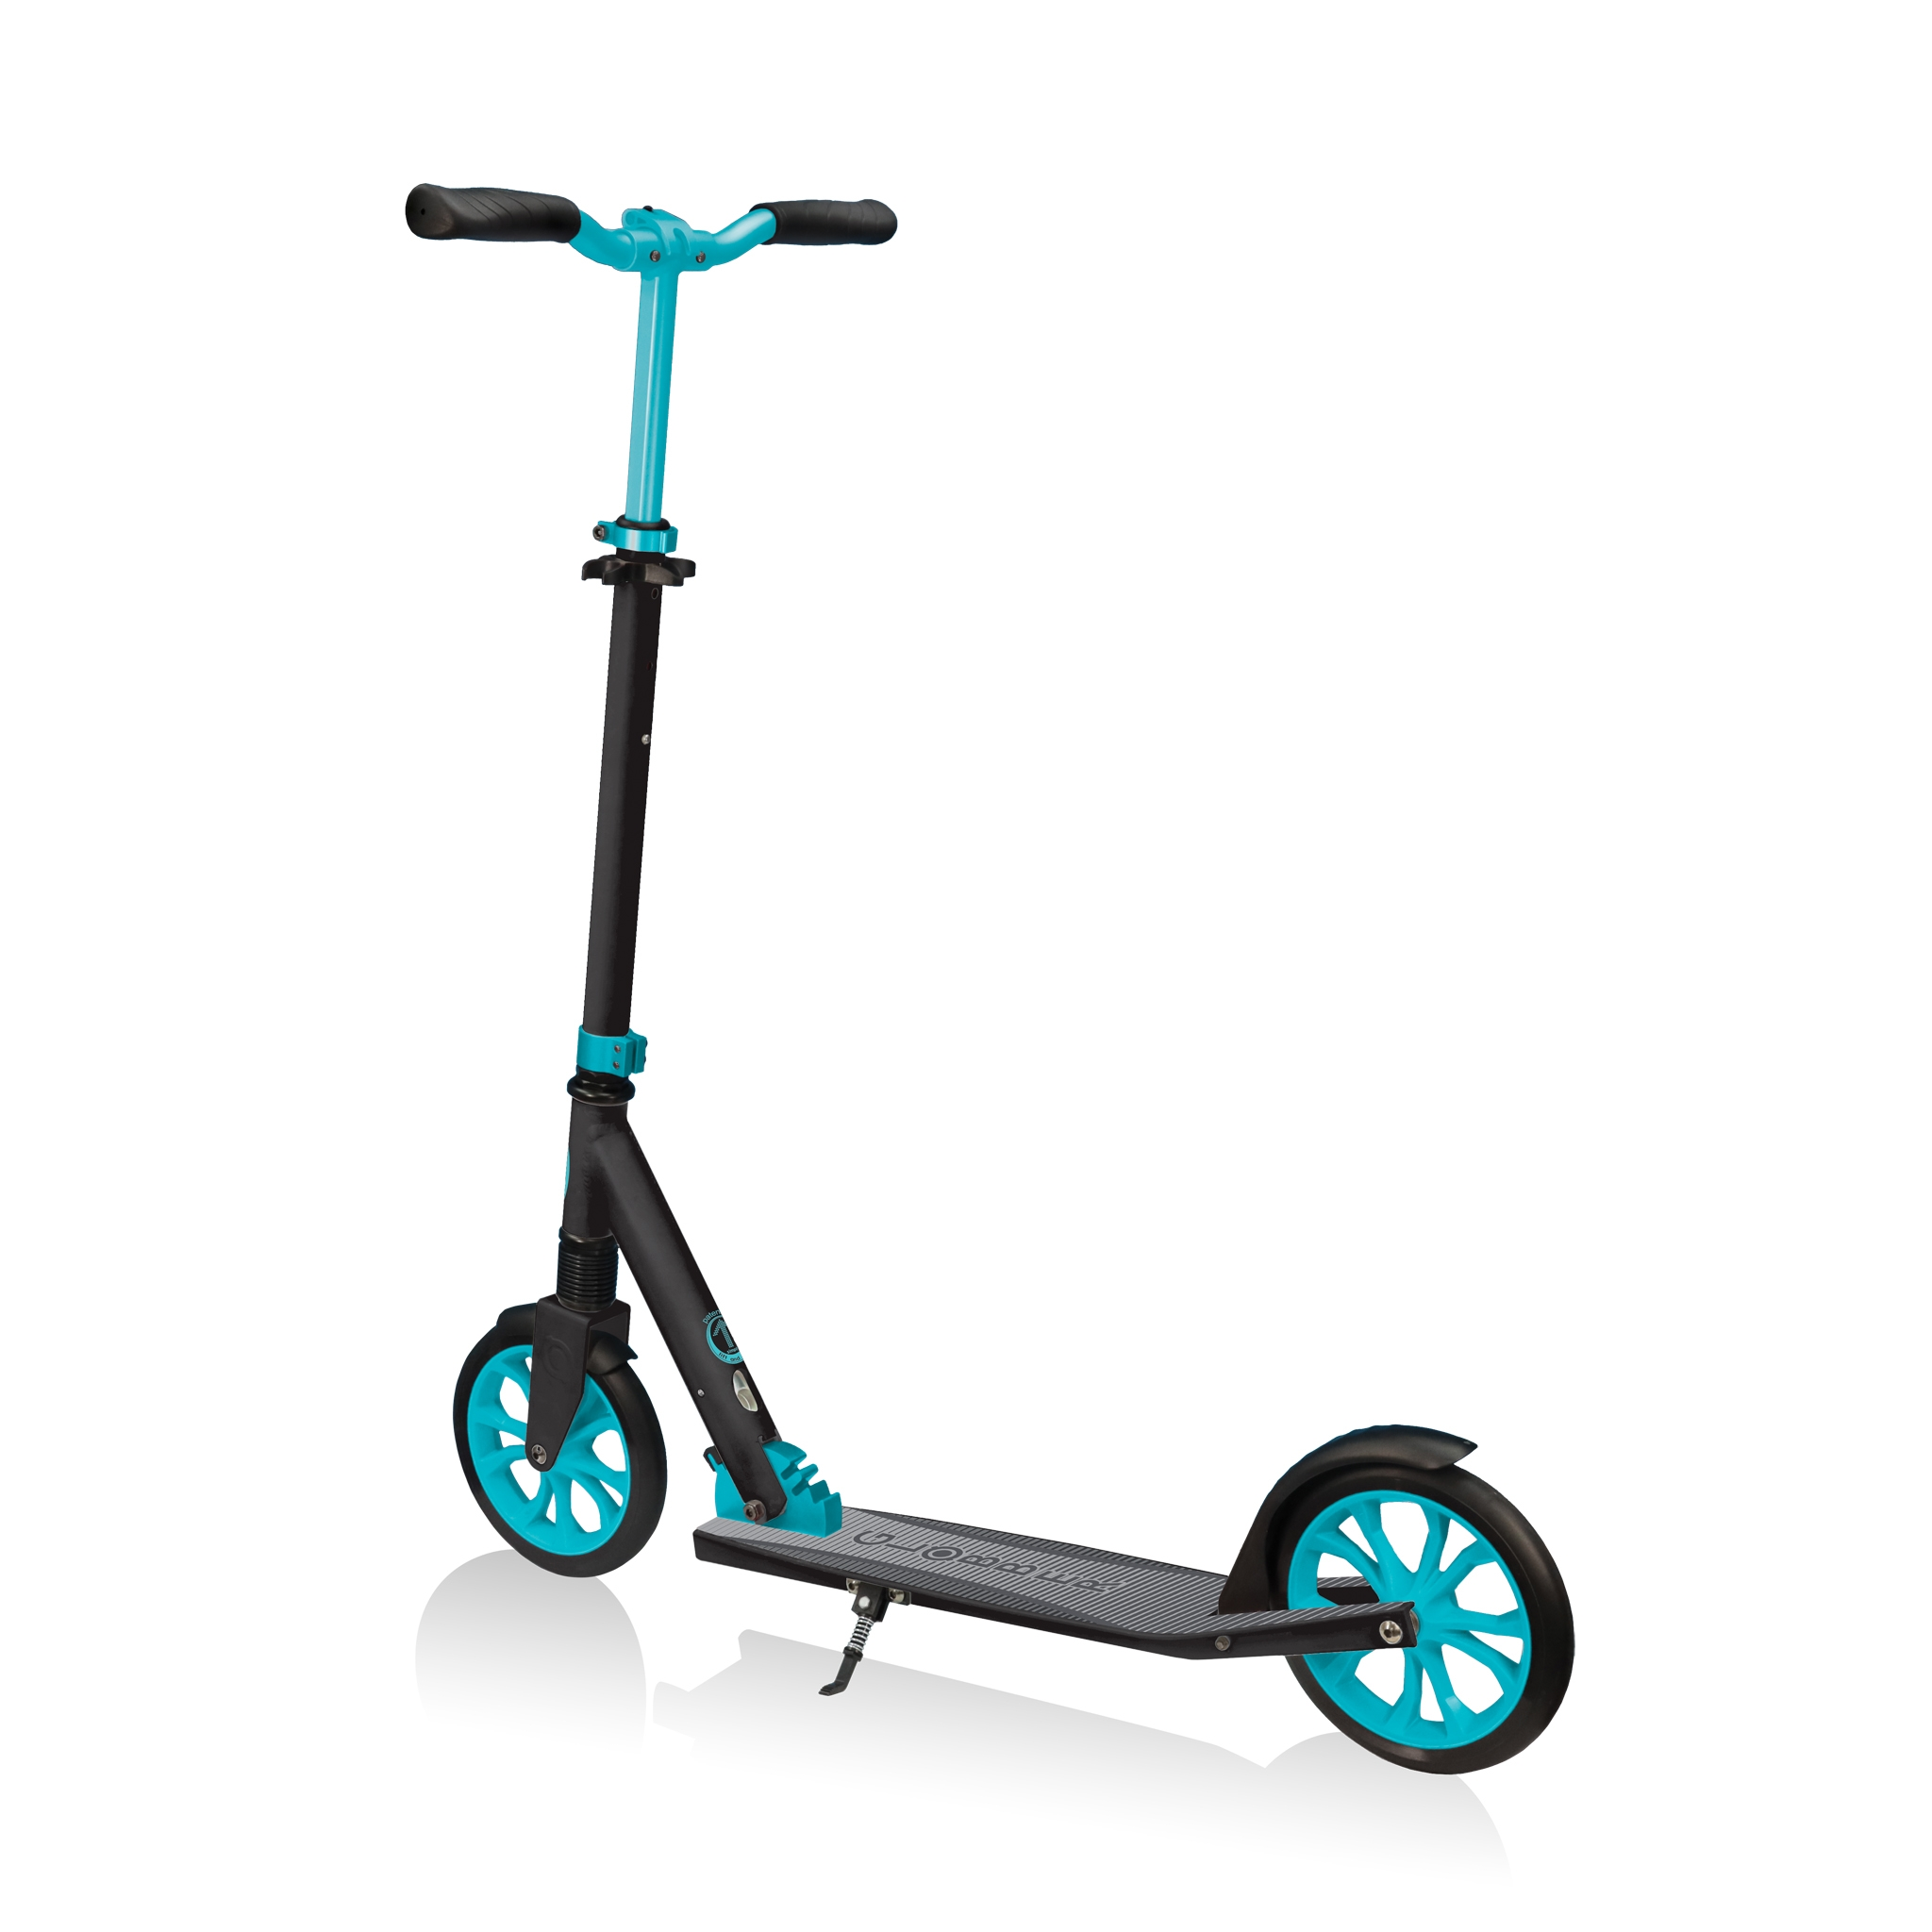 Globber-NL-205-big-wheel-scooter-for-kids-with-front-suspension 4